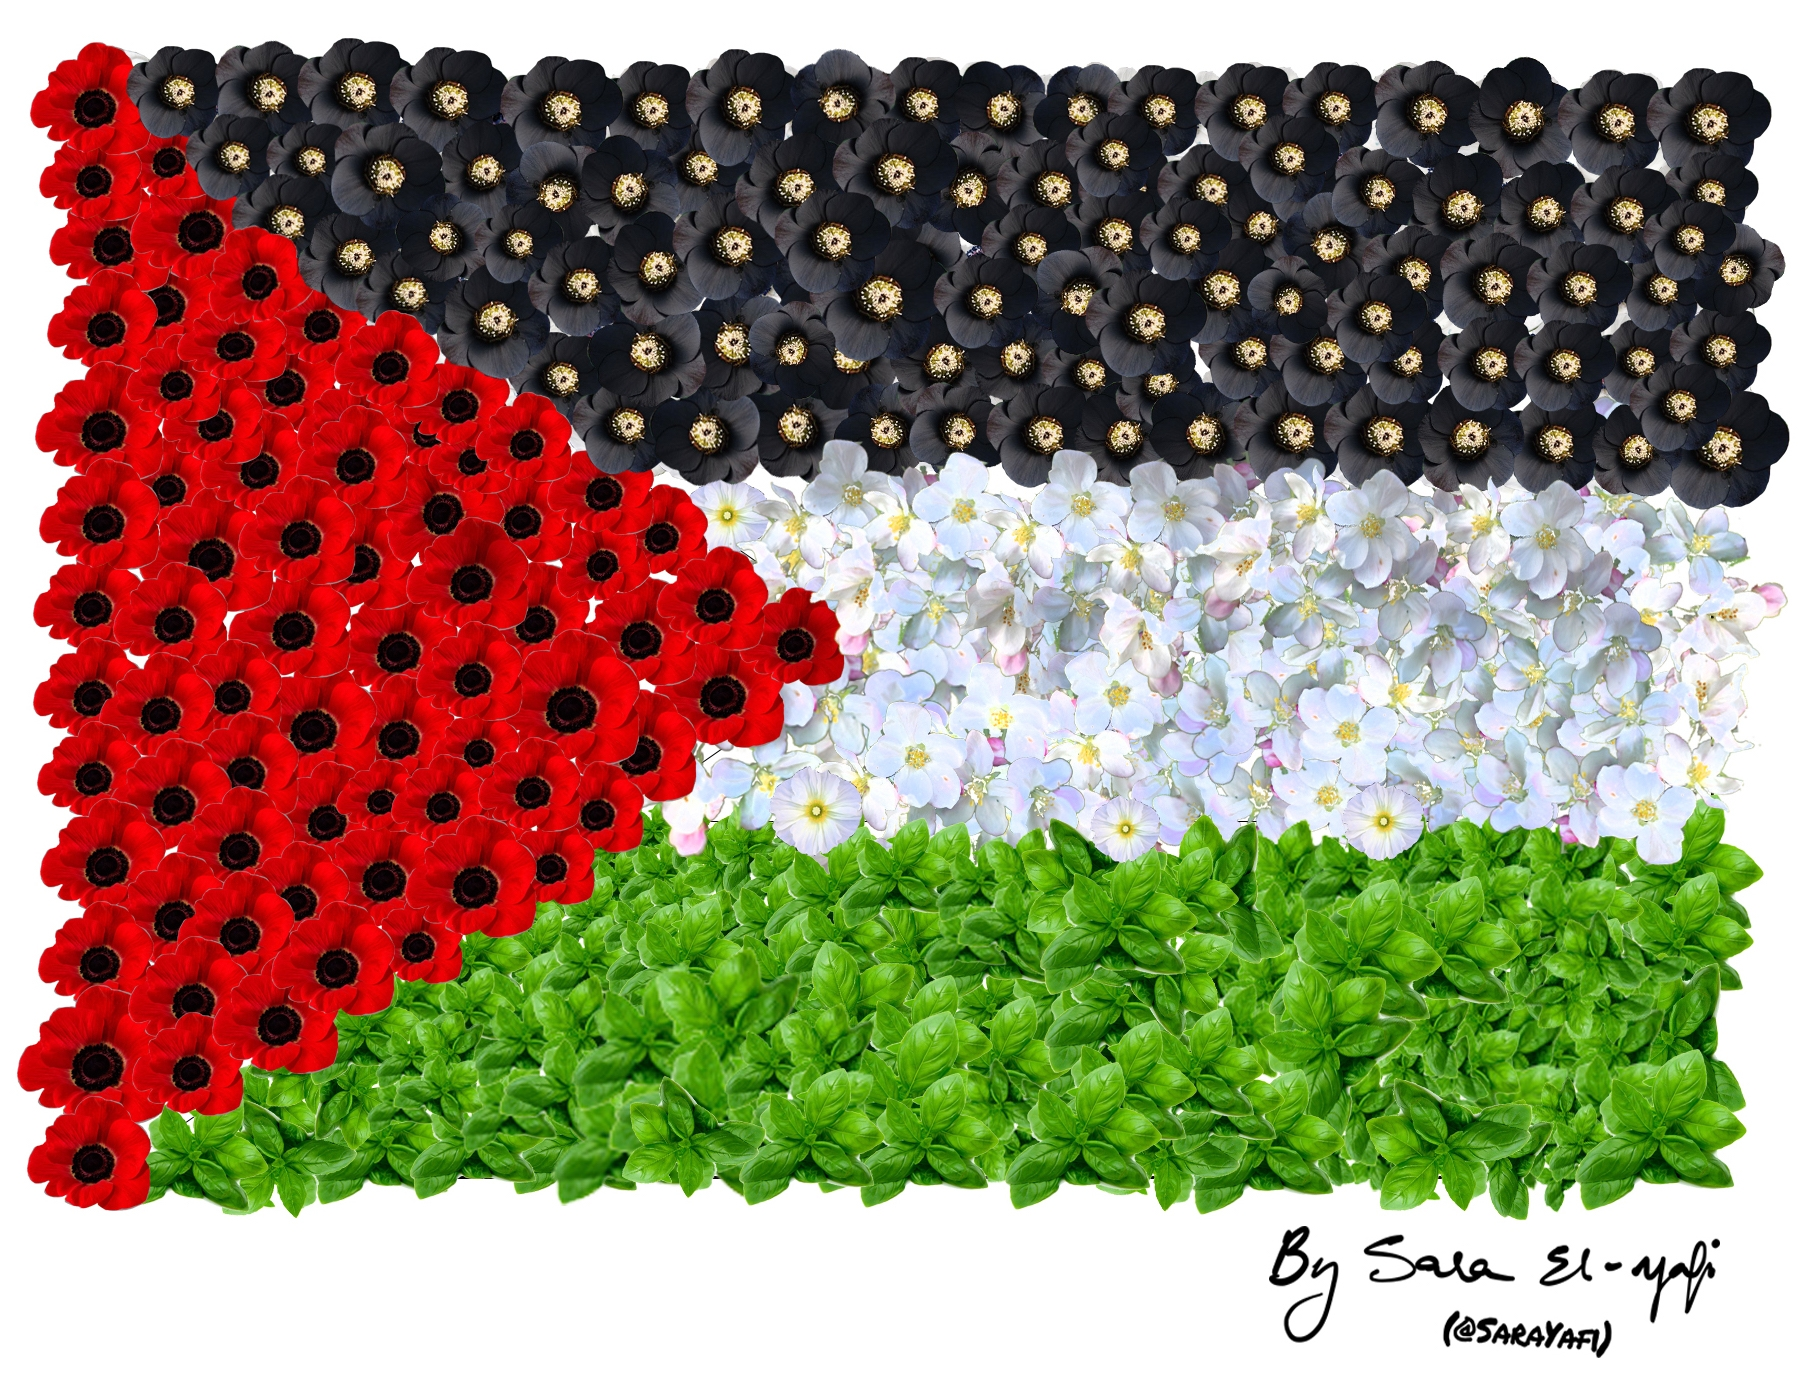 palestinian-flag-made-with-flowers-2-copy-2